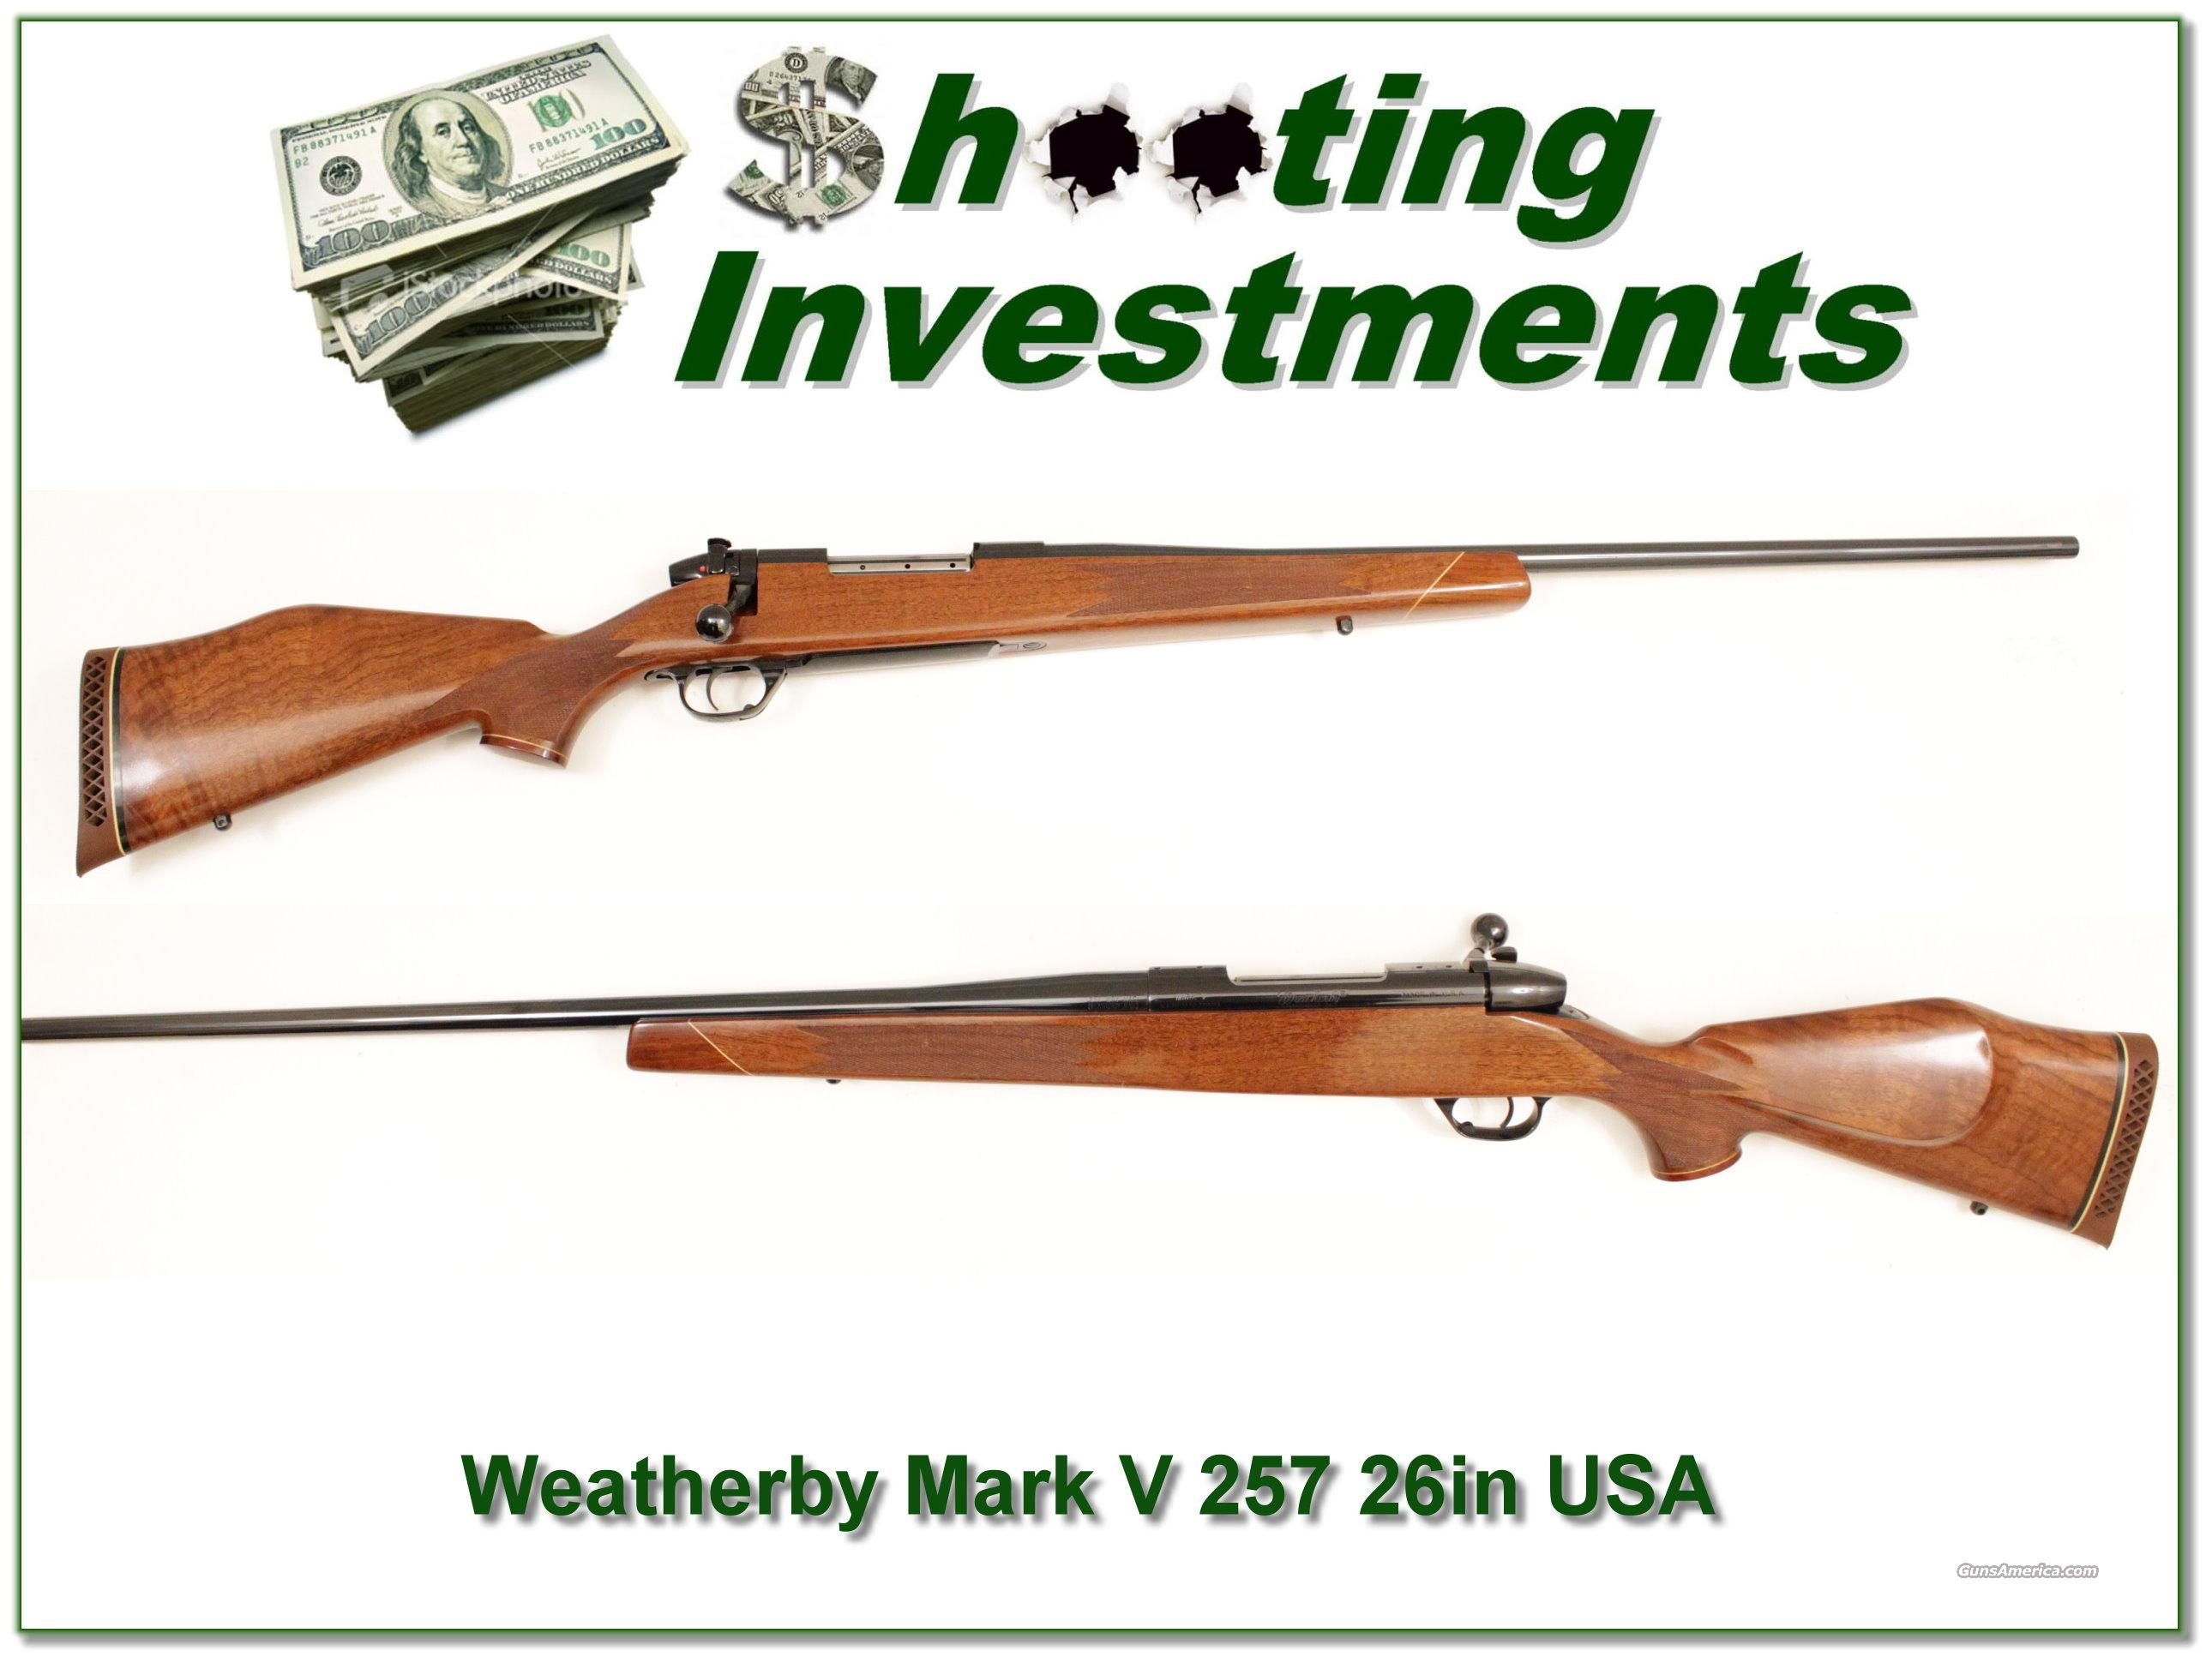 Weatherby Mark V Deluxe 257 USA Made as new  Guns > Rifles > Weatherby Rifles > Sporting